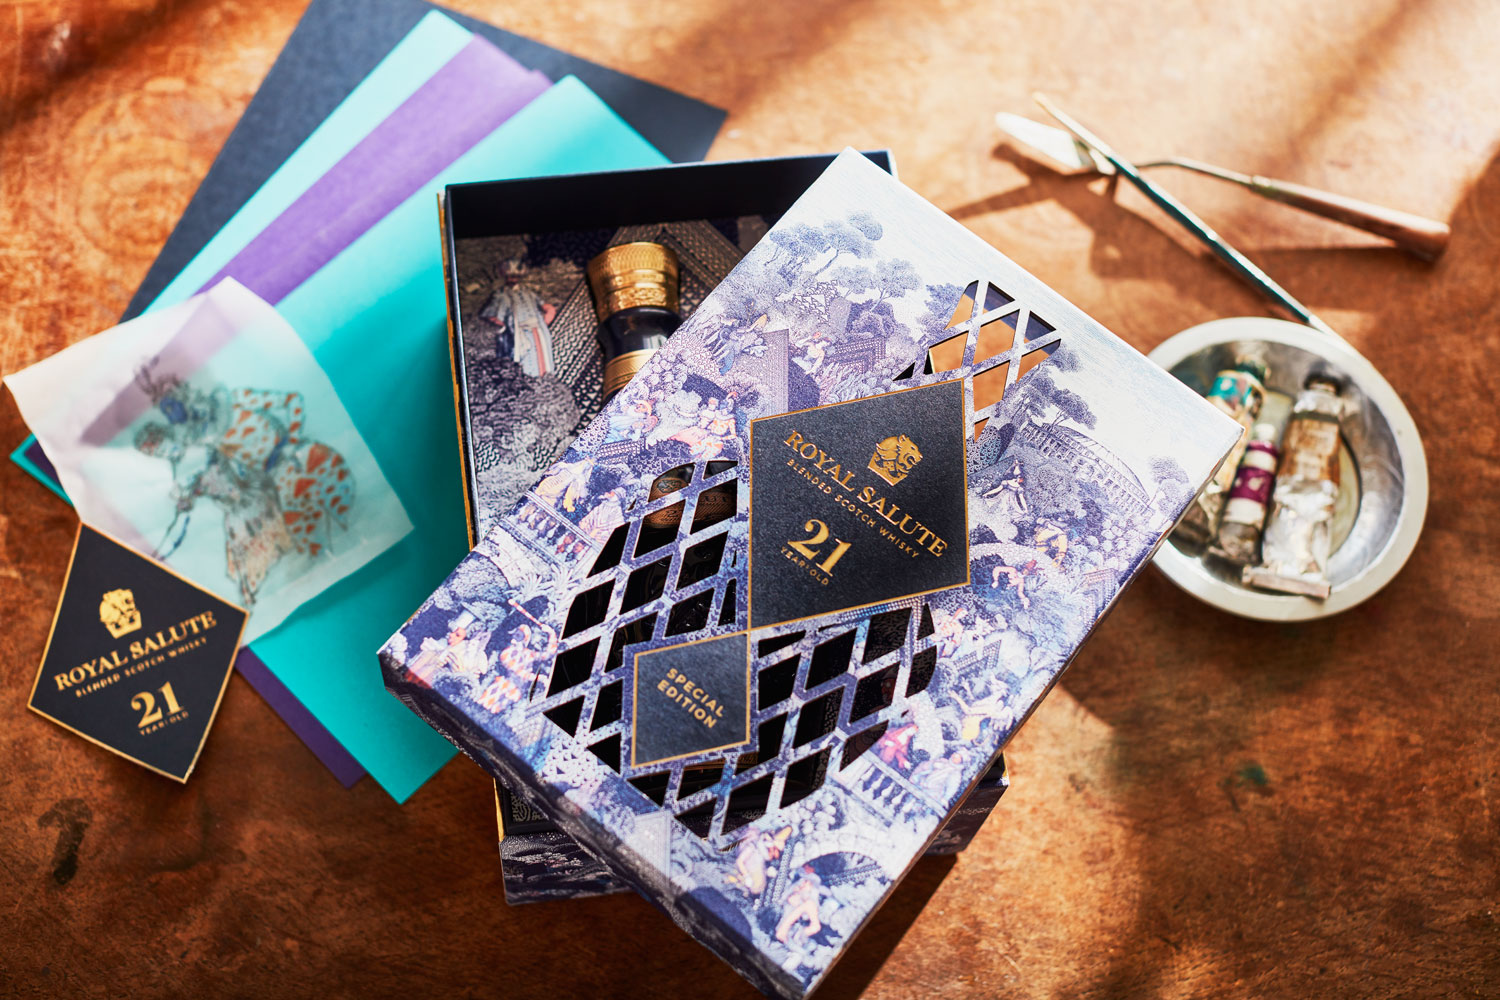 Royal Salute Unveils Masquerade Ball Gift Pack For The Festive Season